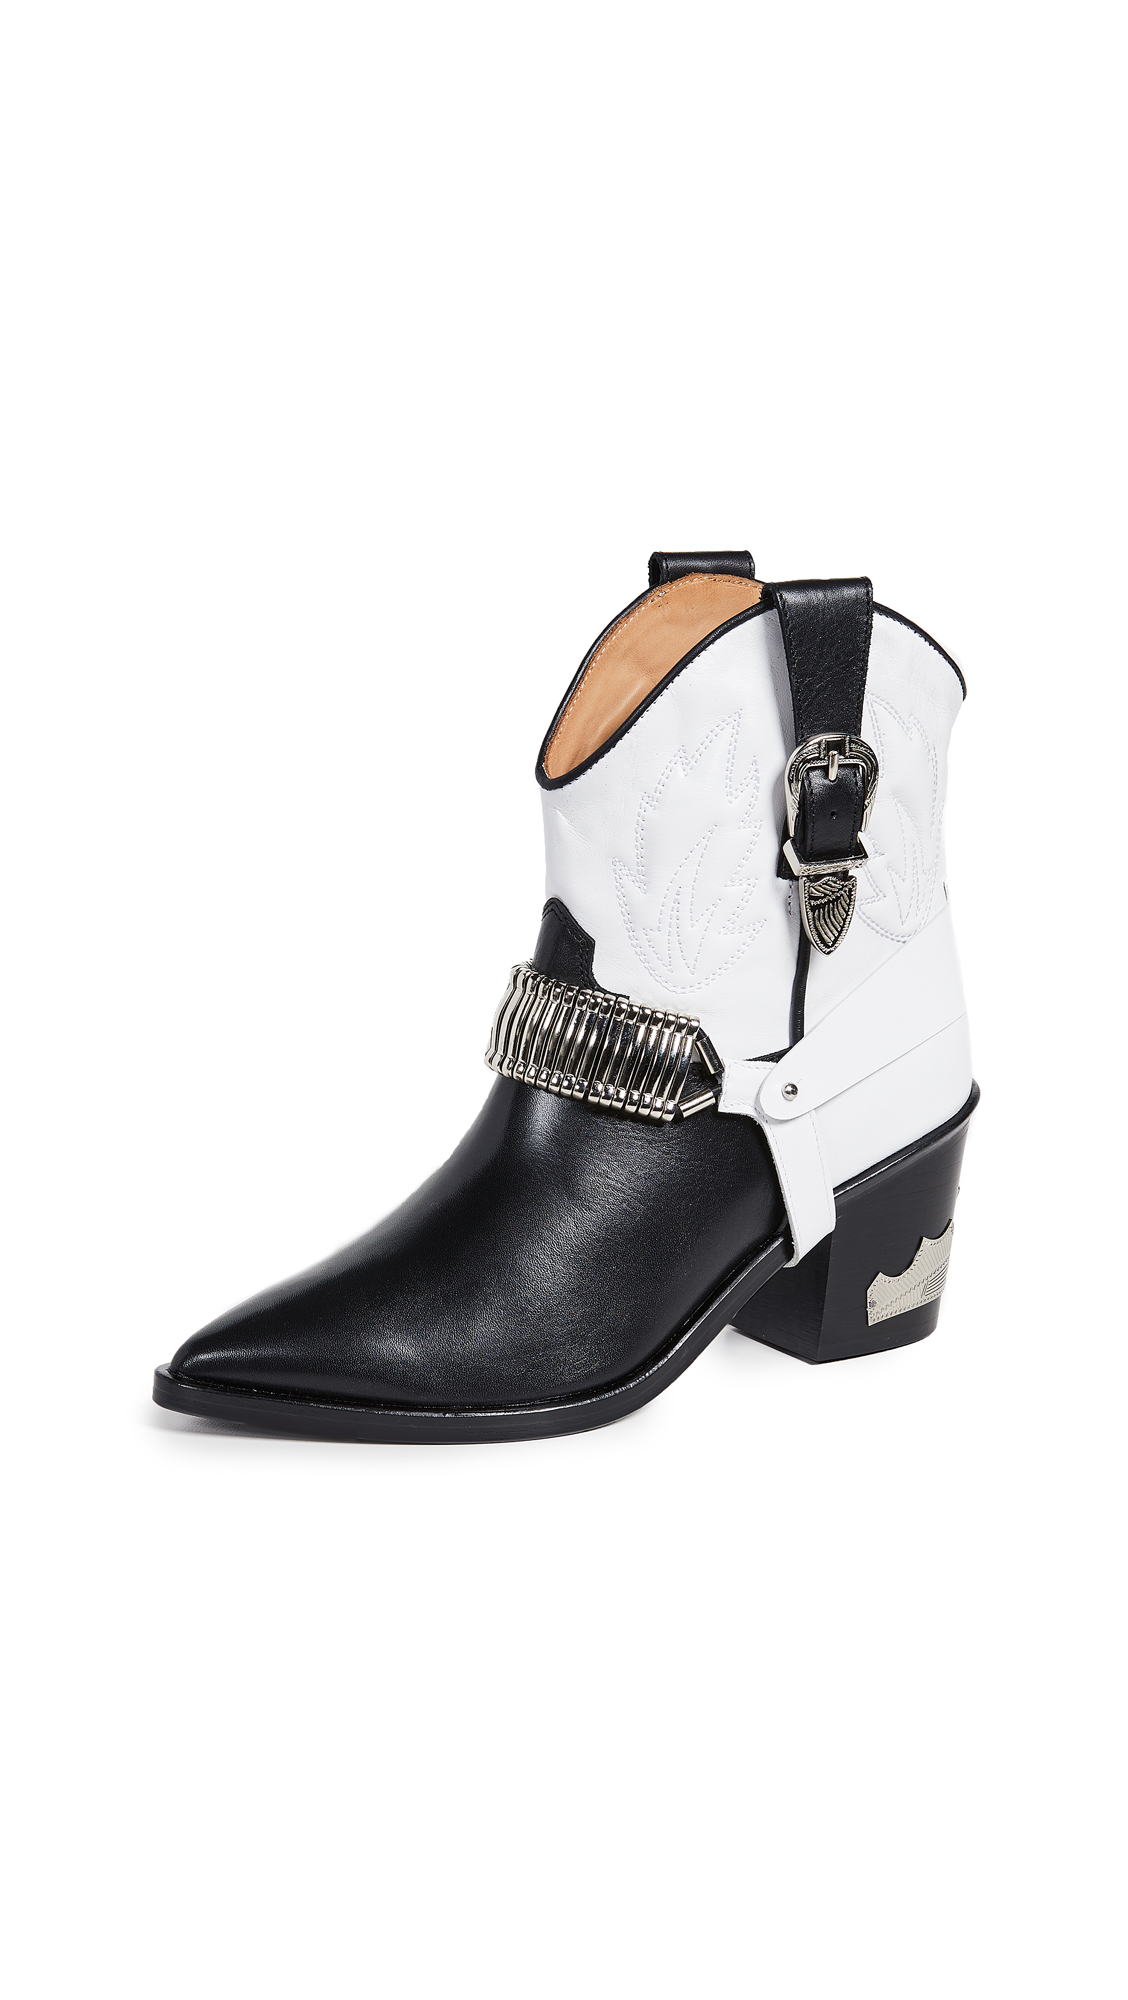 Toga Pulla Western Boots - Black/White